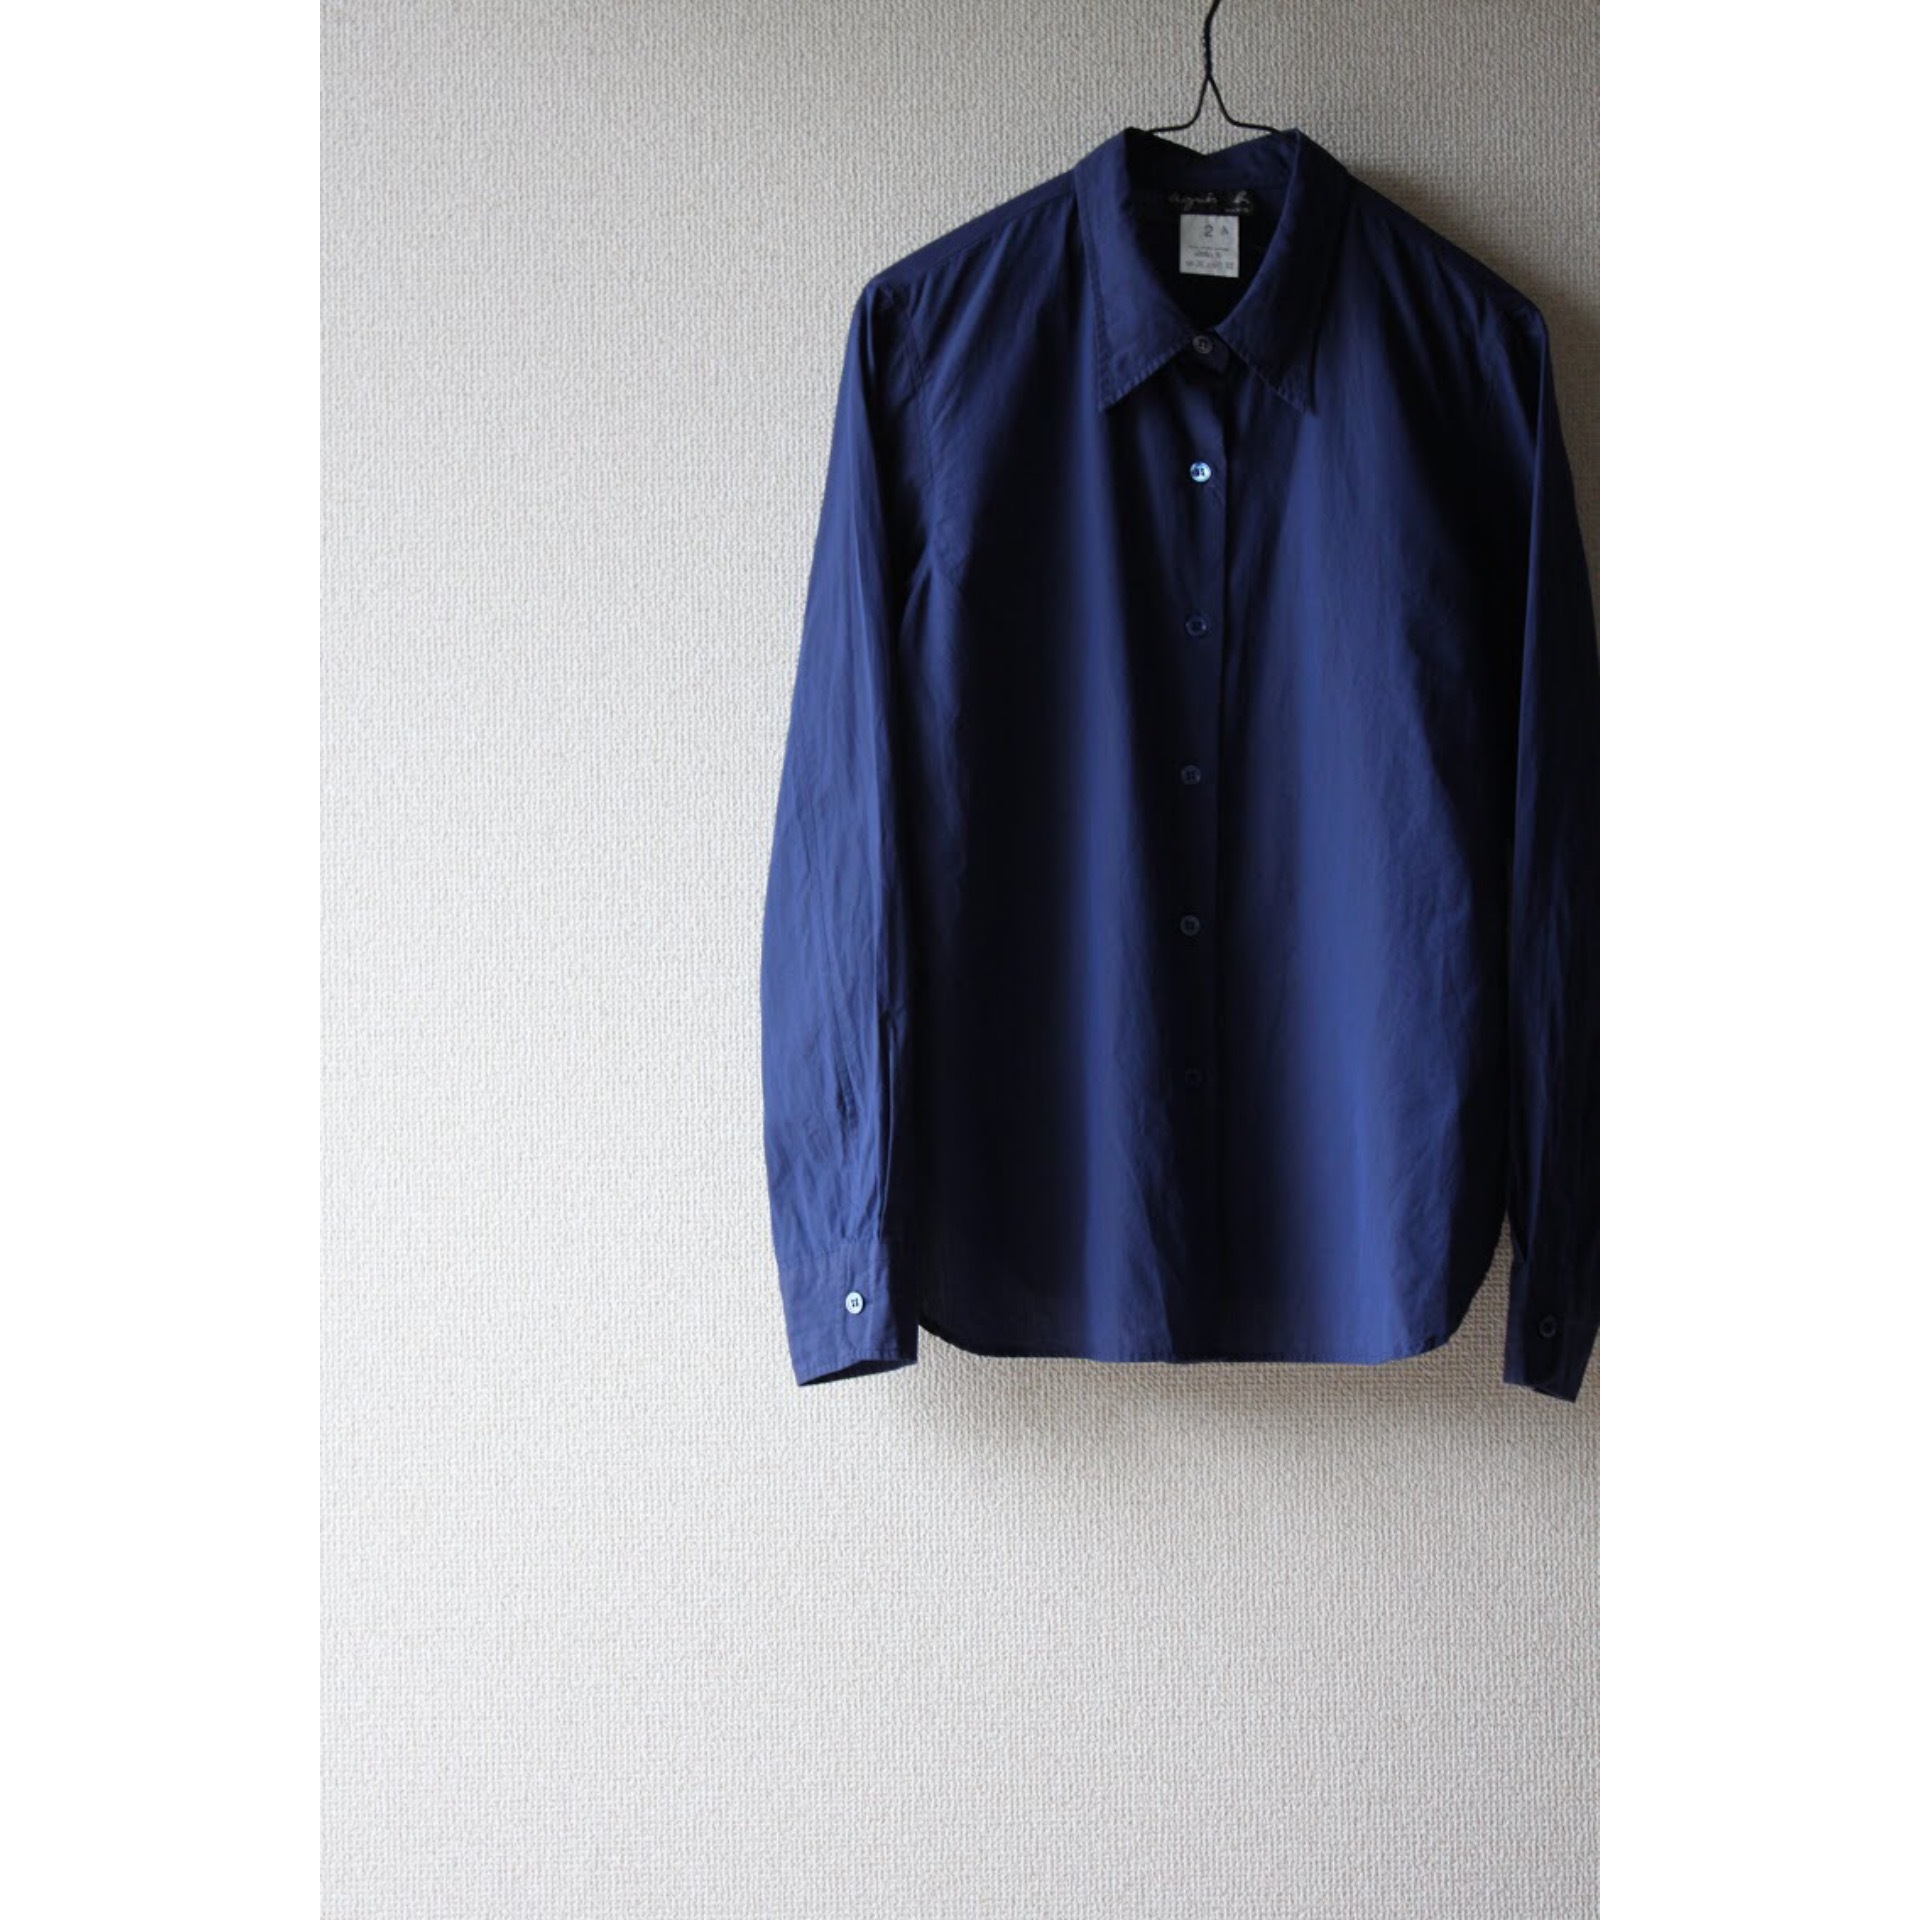 Cotton long sleeve shirt by agnès b.